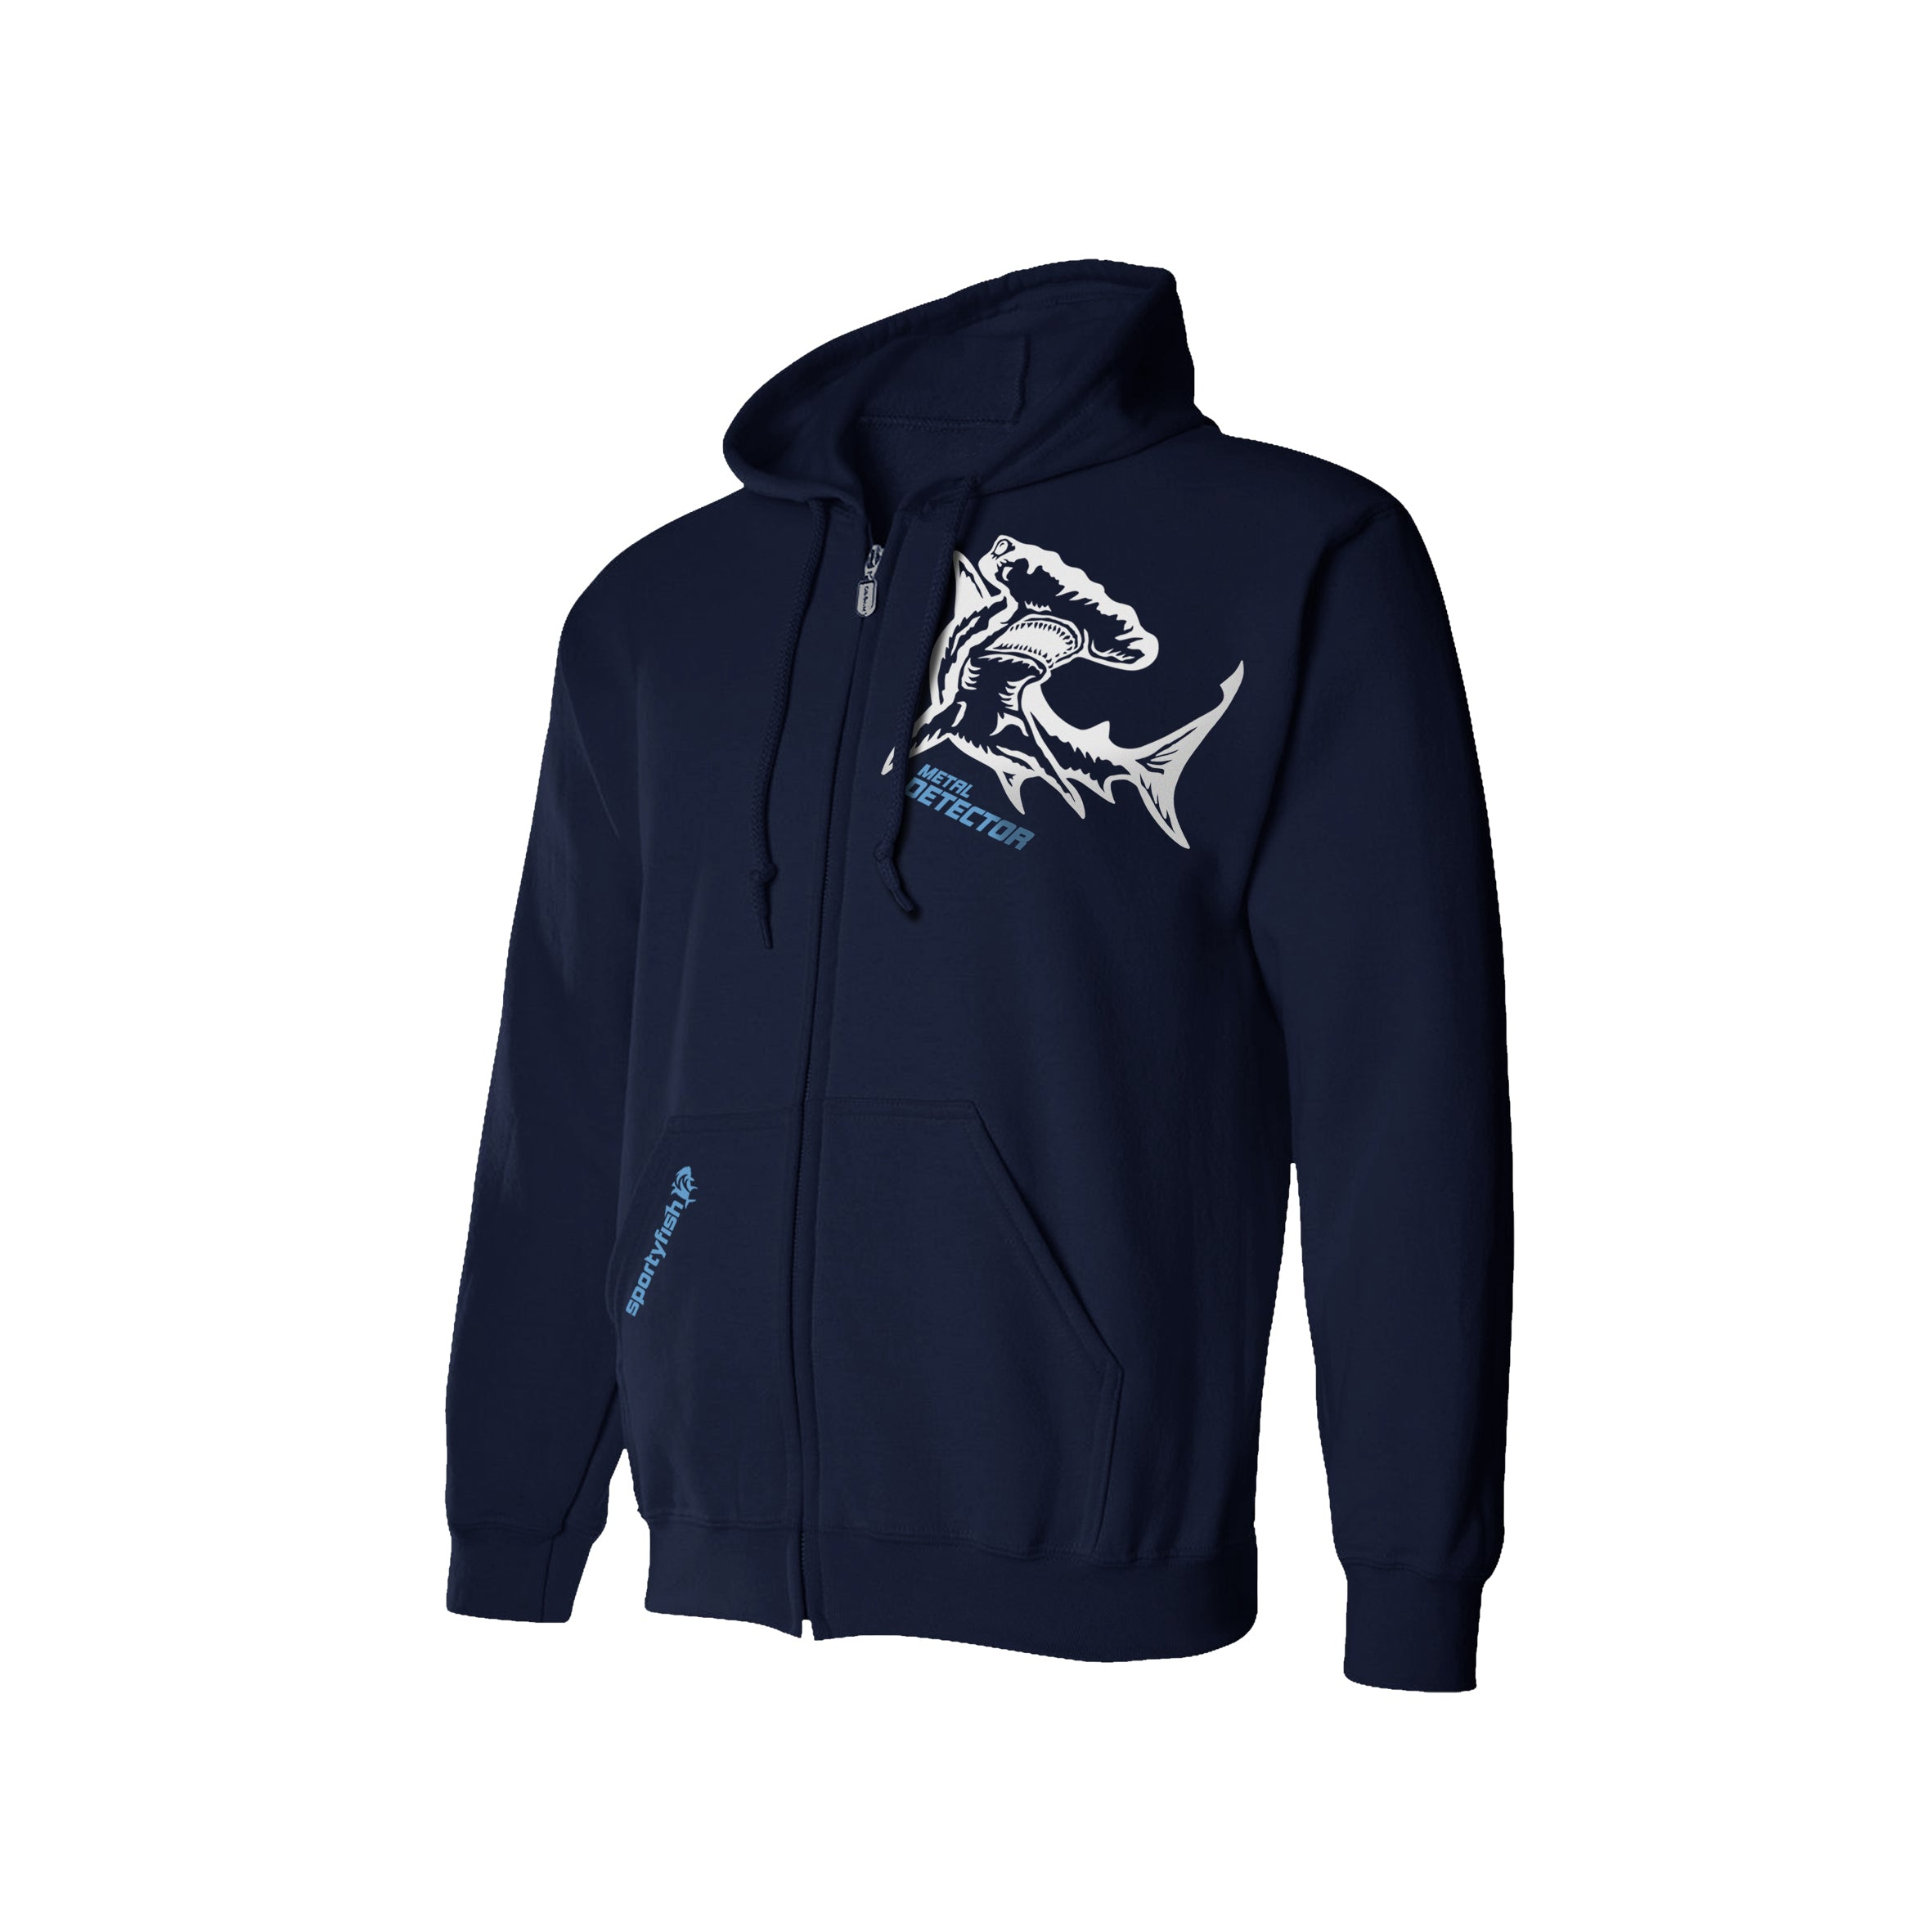 Shark Crusader Series Hoodie - Hammerhead Shark